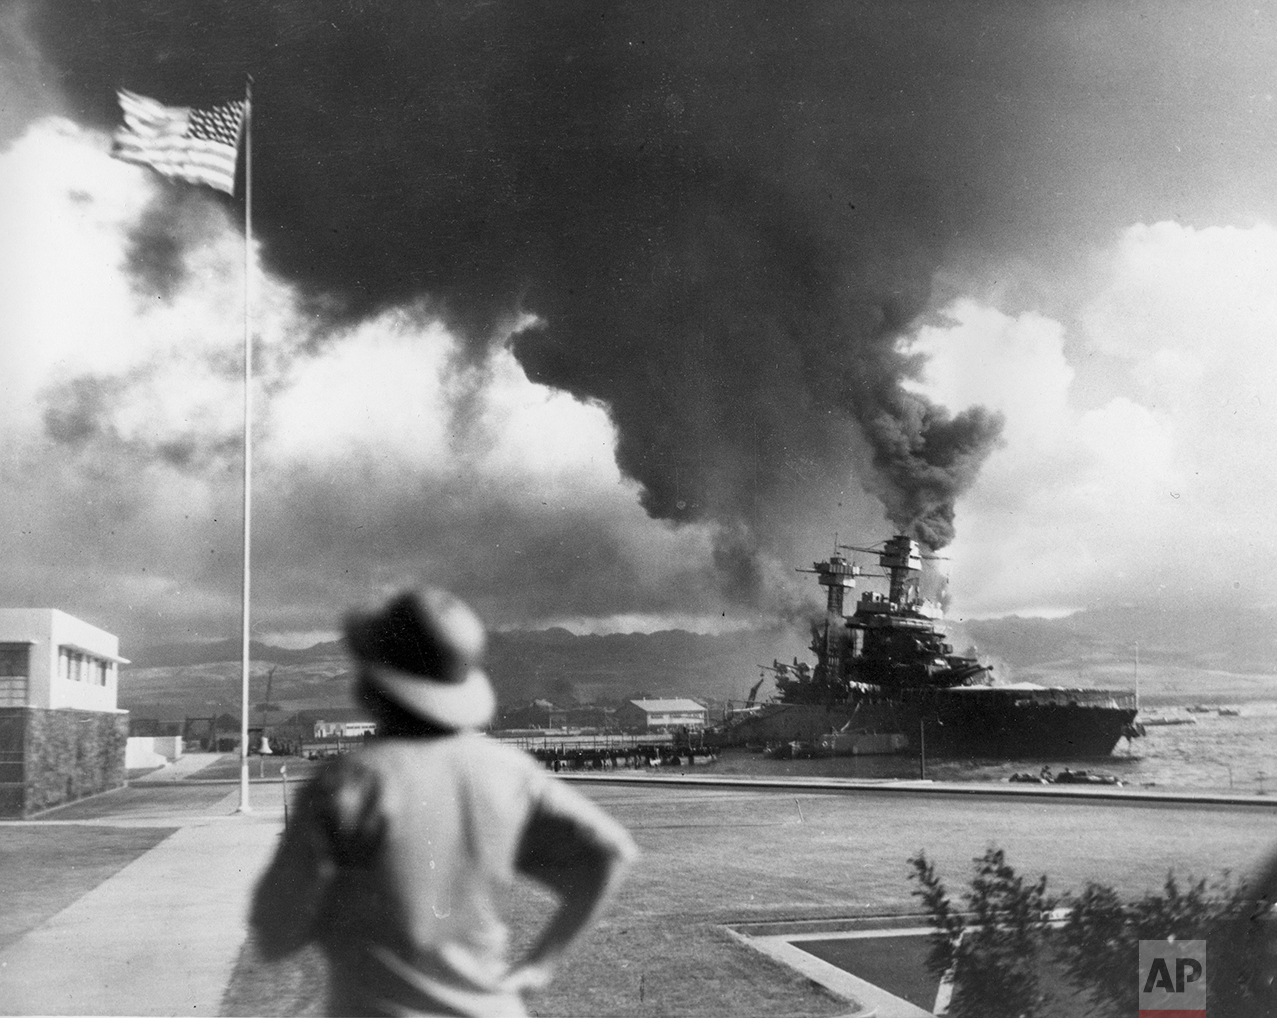 American ships burn during the Japanese attack on Pearl Harbor, Hawaii, on Dec. 7, 1942. (AP Photo)